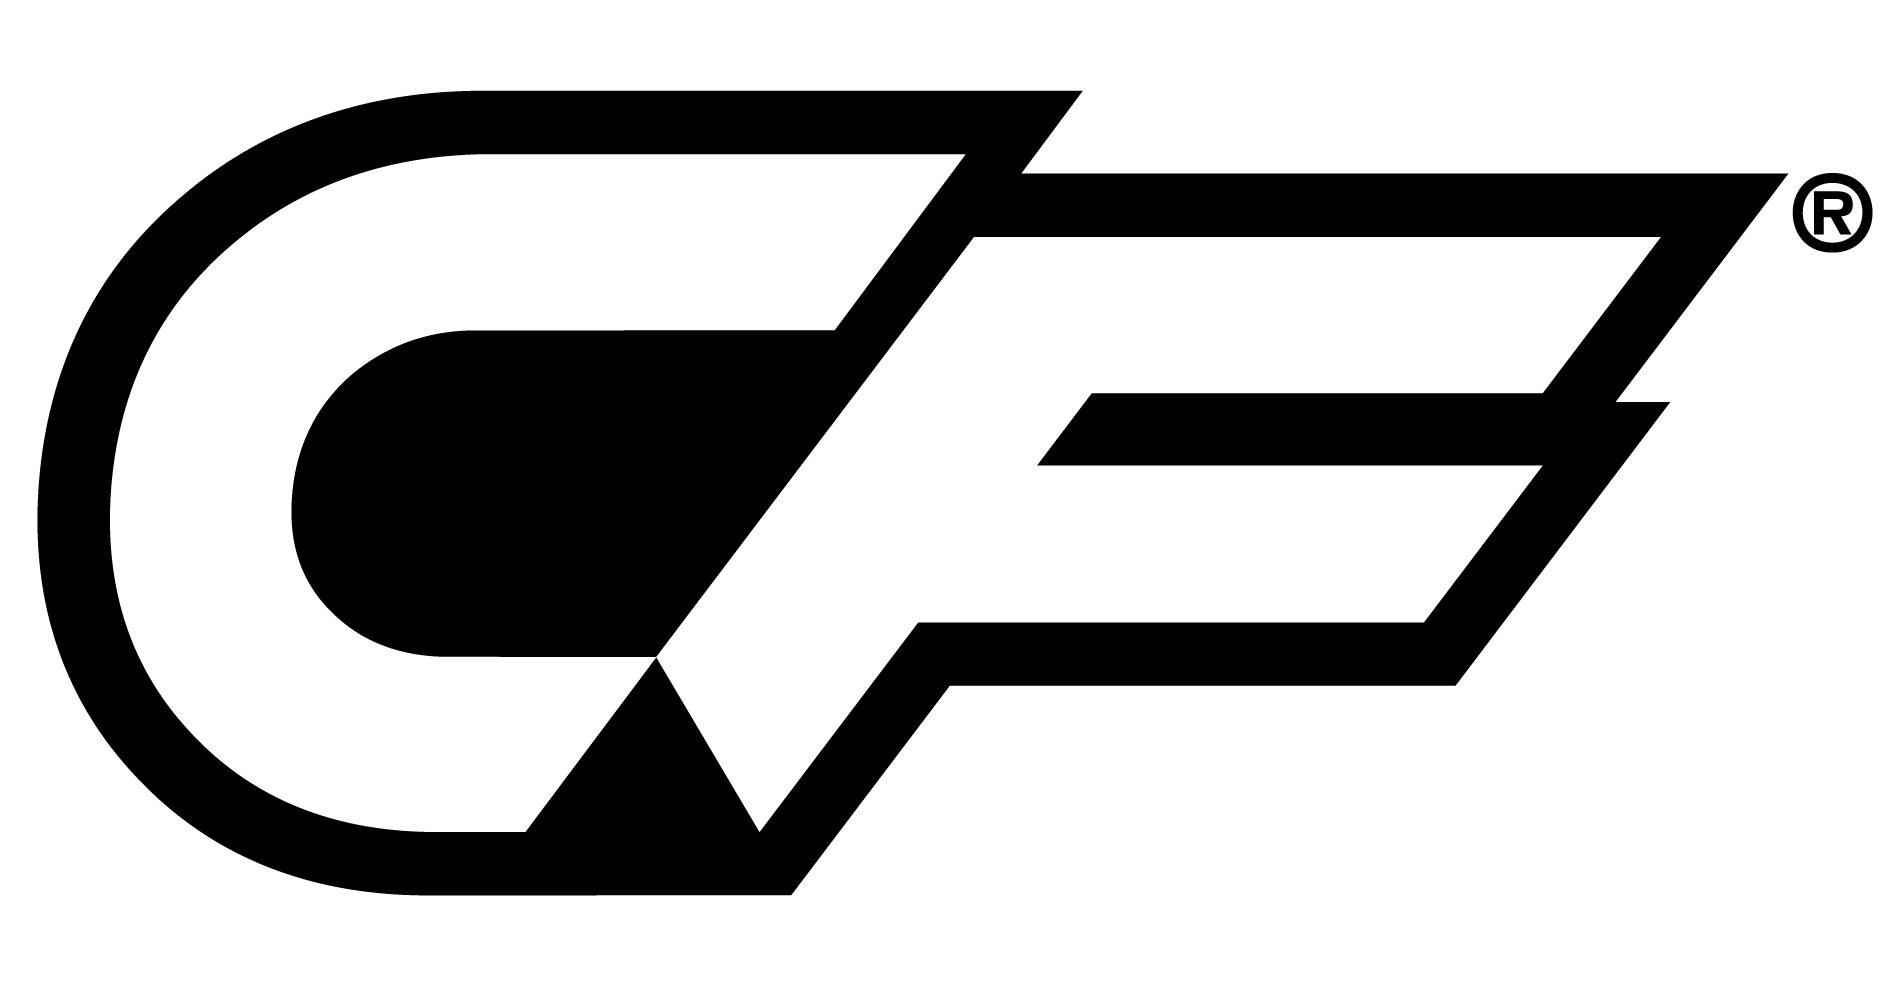 File cf athletic logo. 3 .png picture royalty free stock